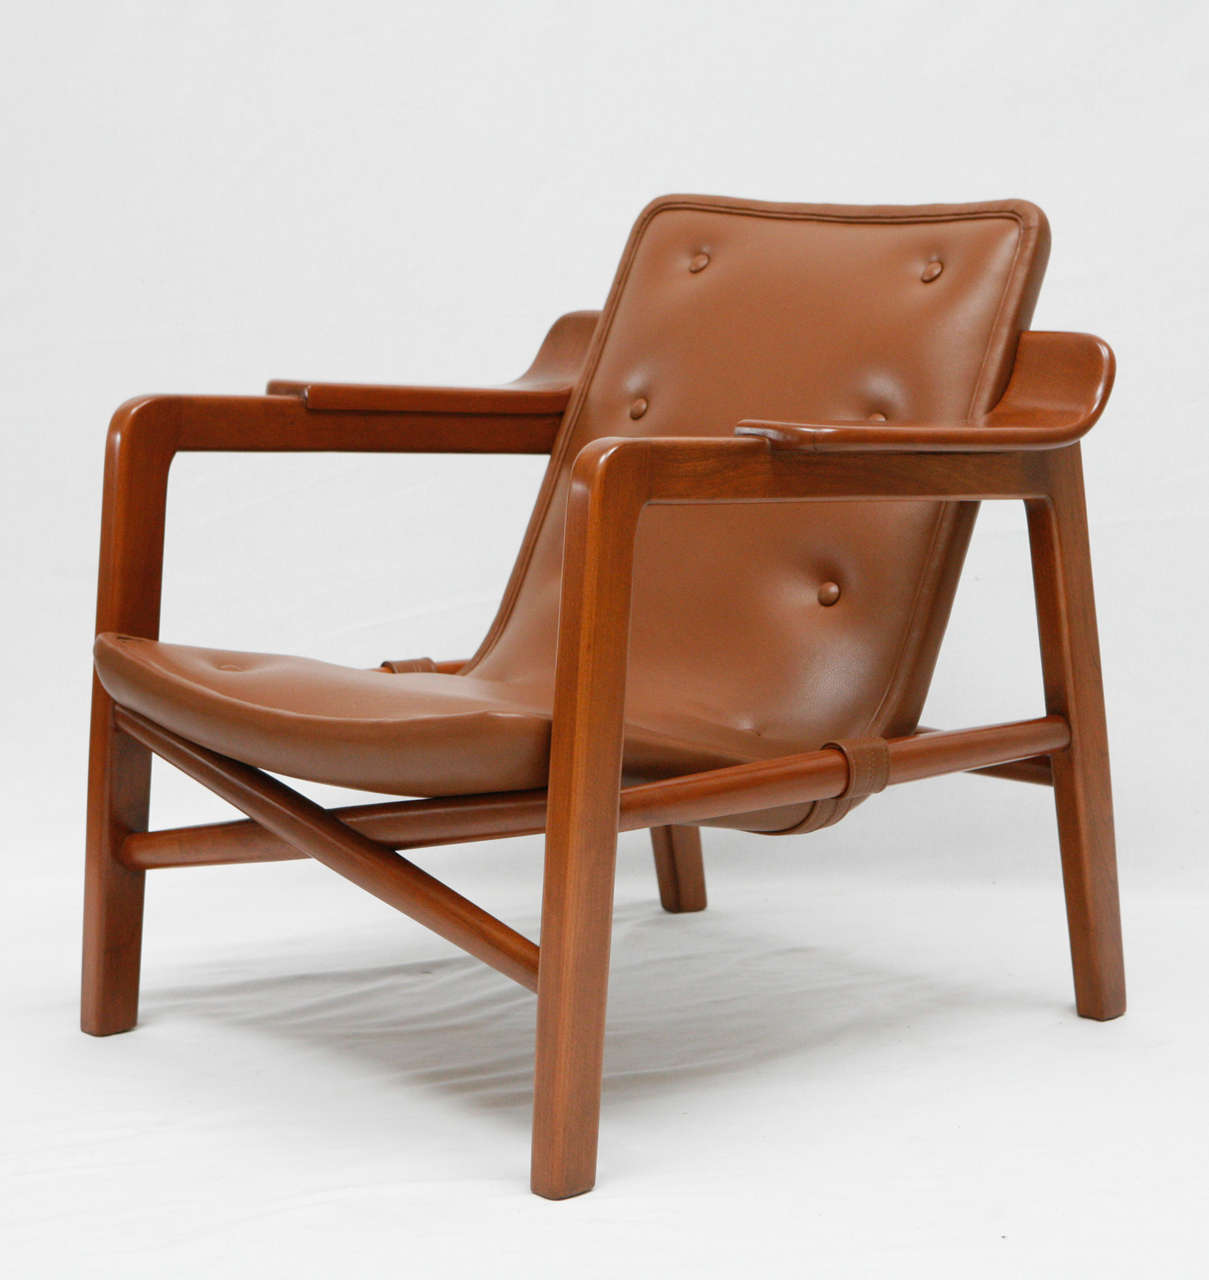 fireplace chair by tove and edvard kindt larsen at 1stdibs